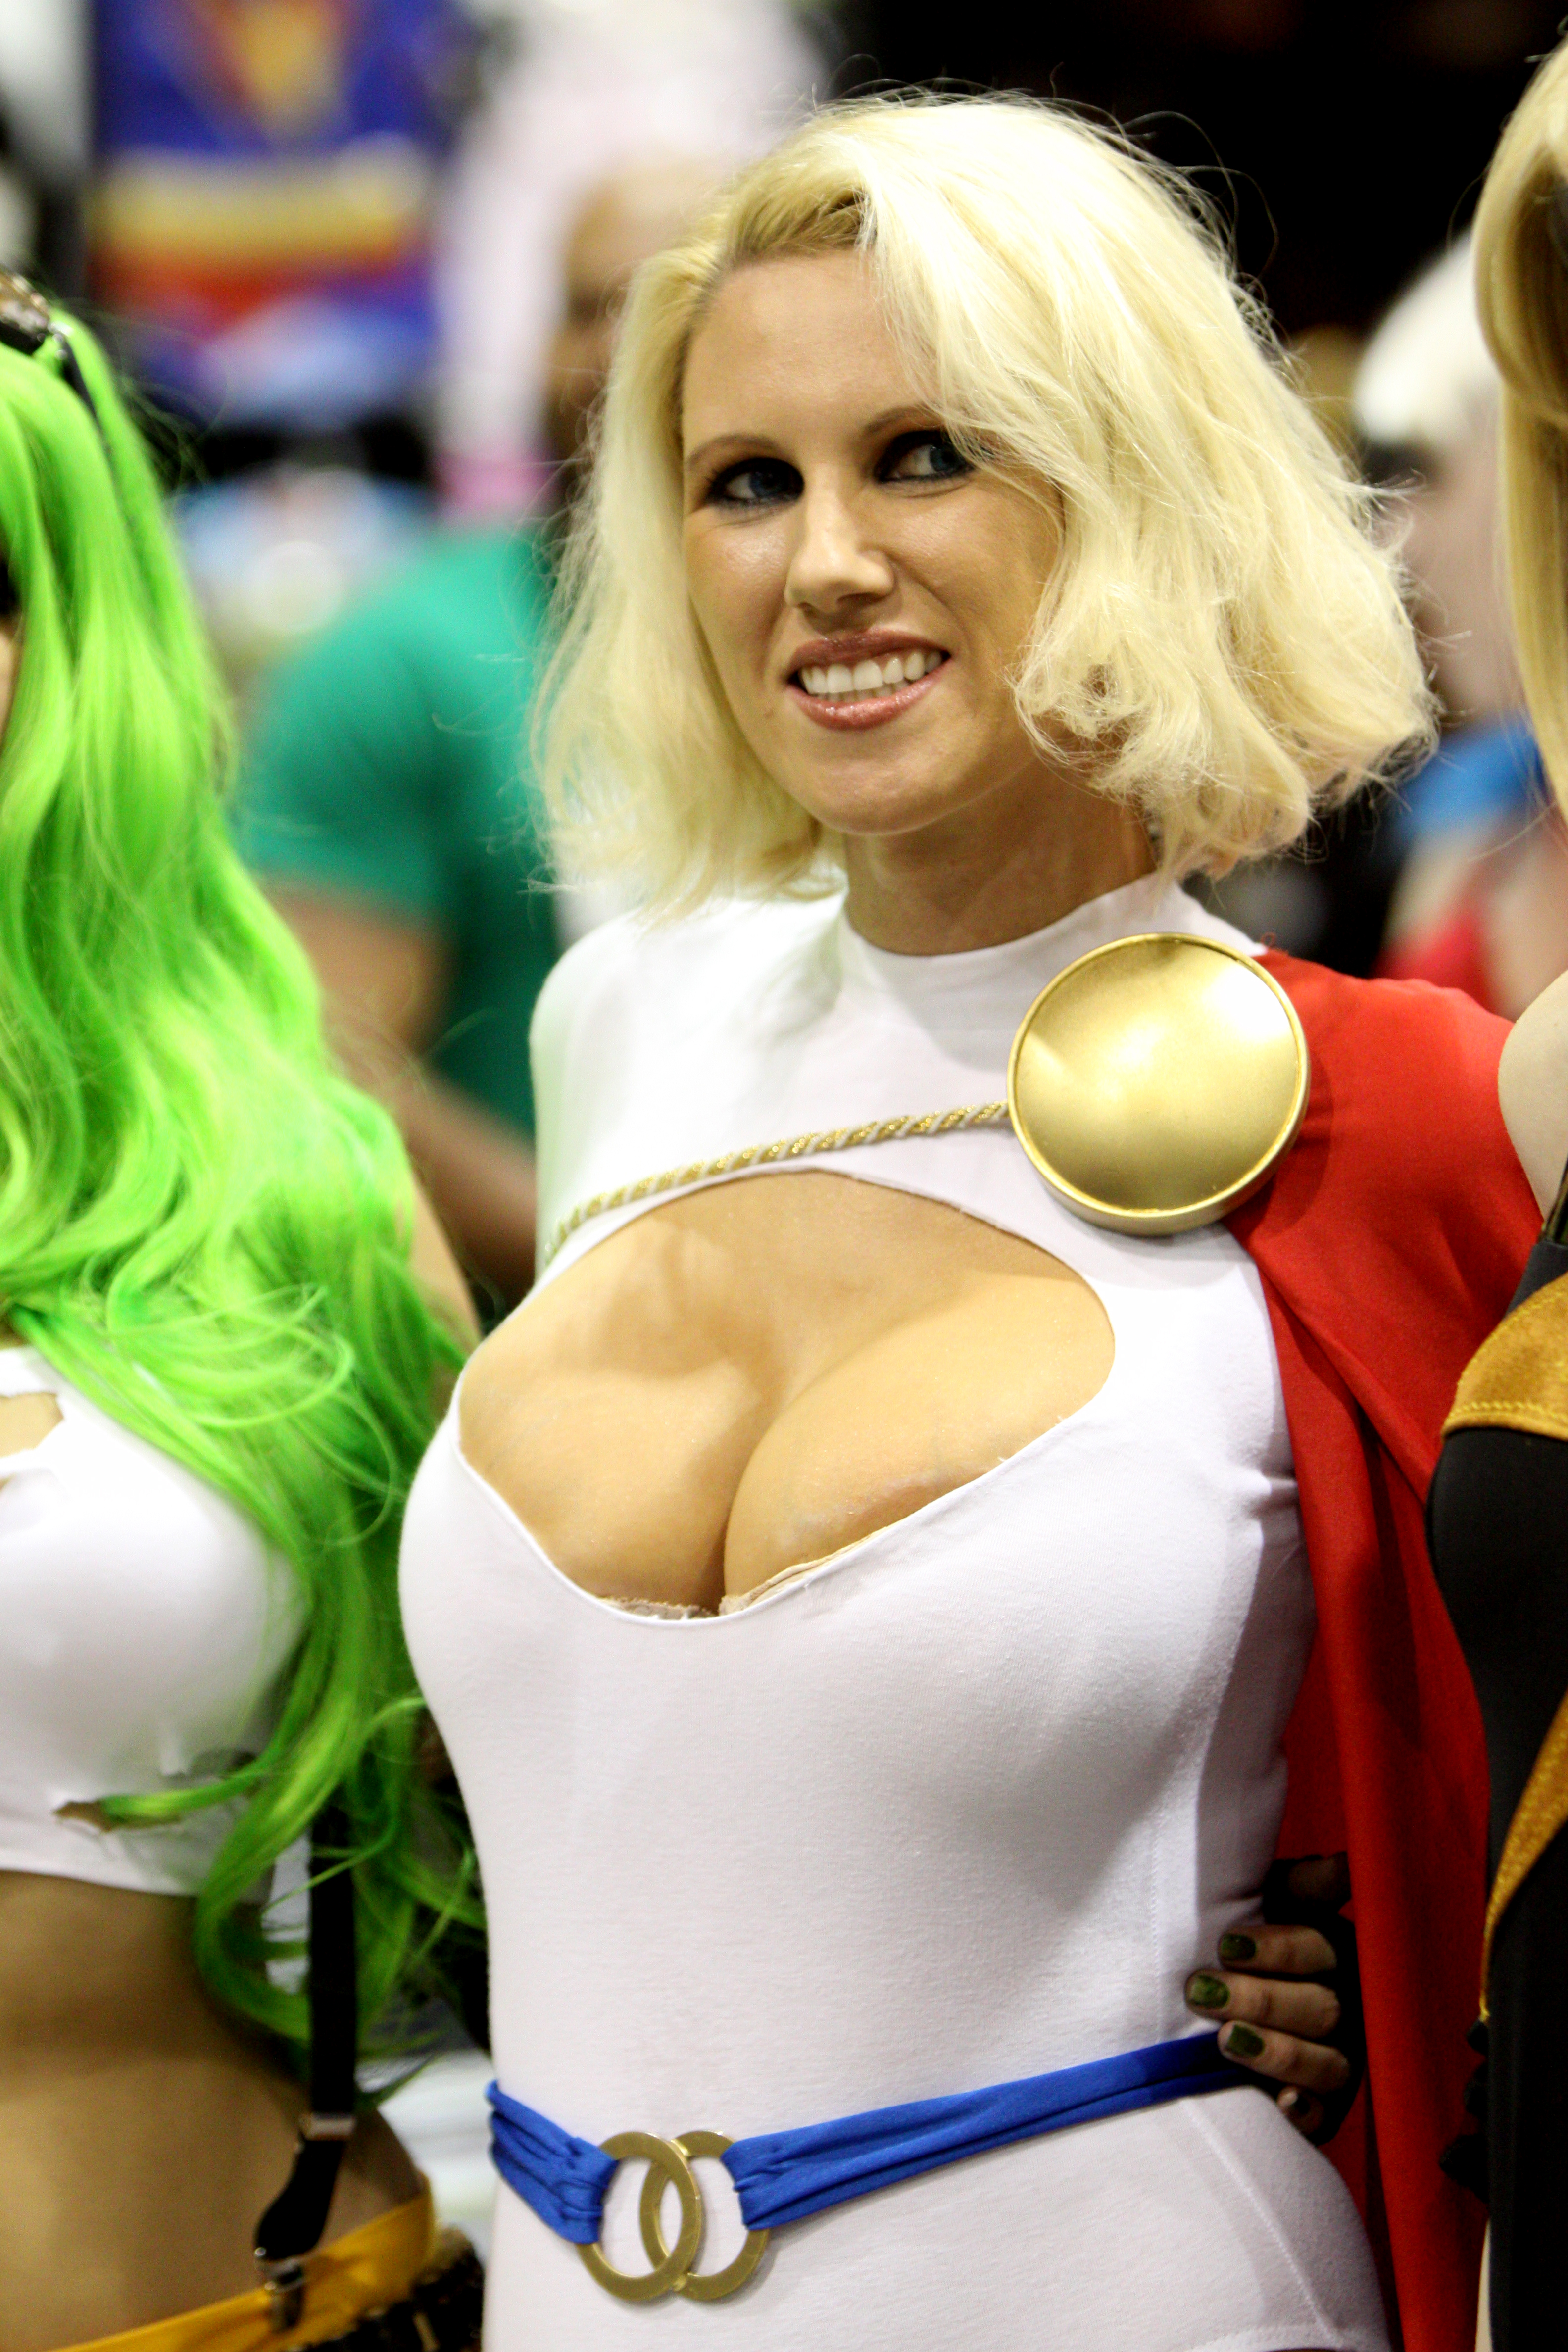 Share Power girl cosplayers xxx